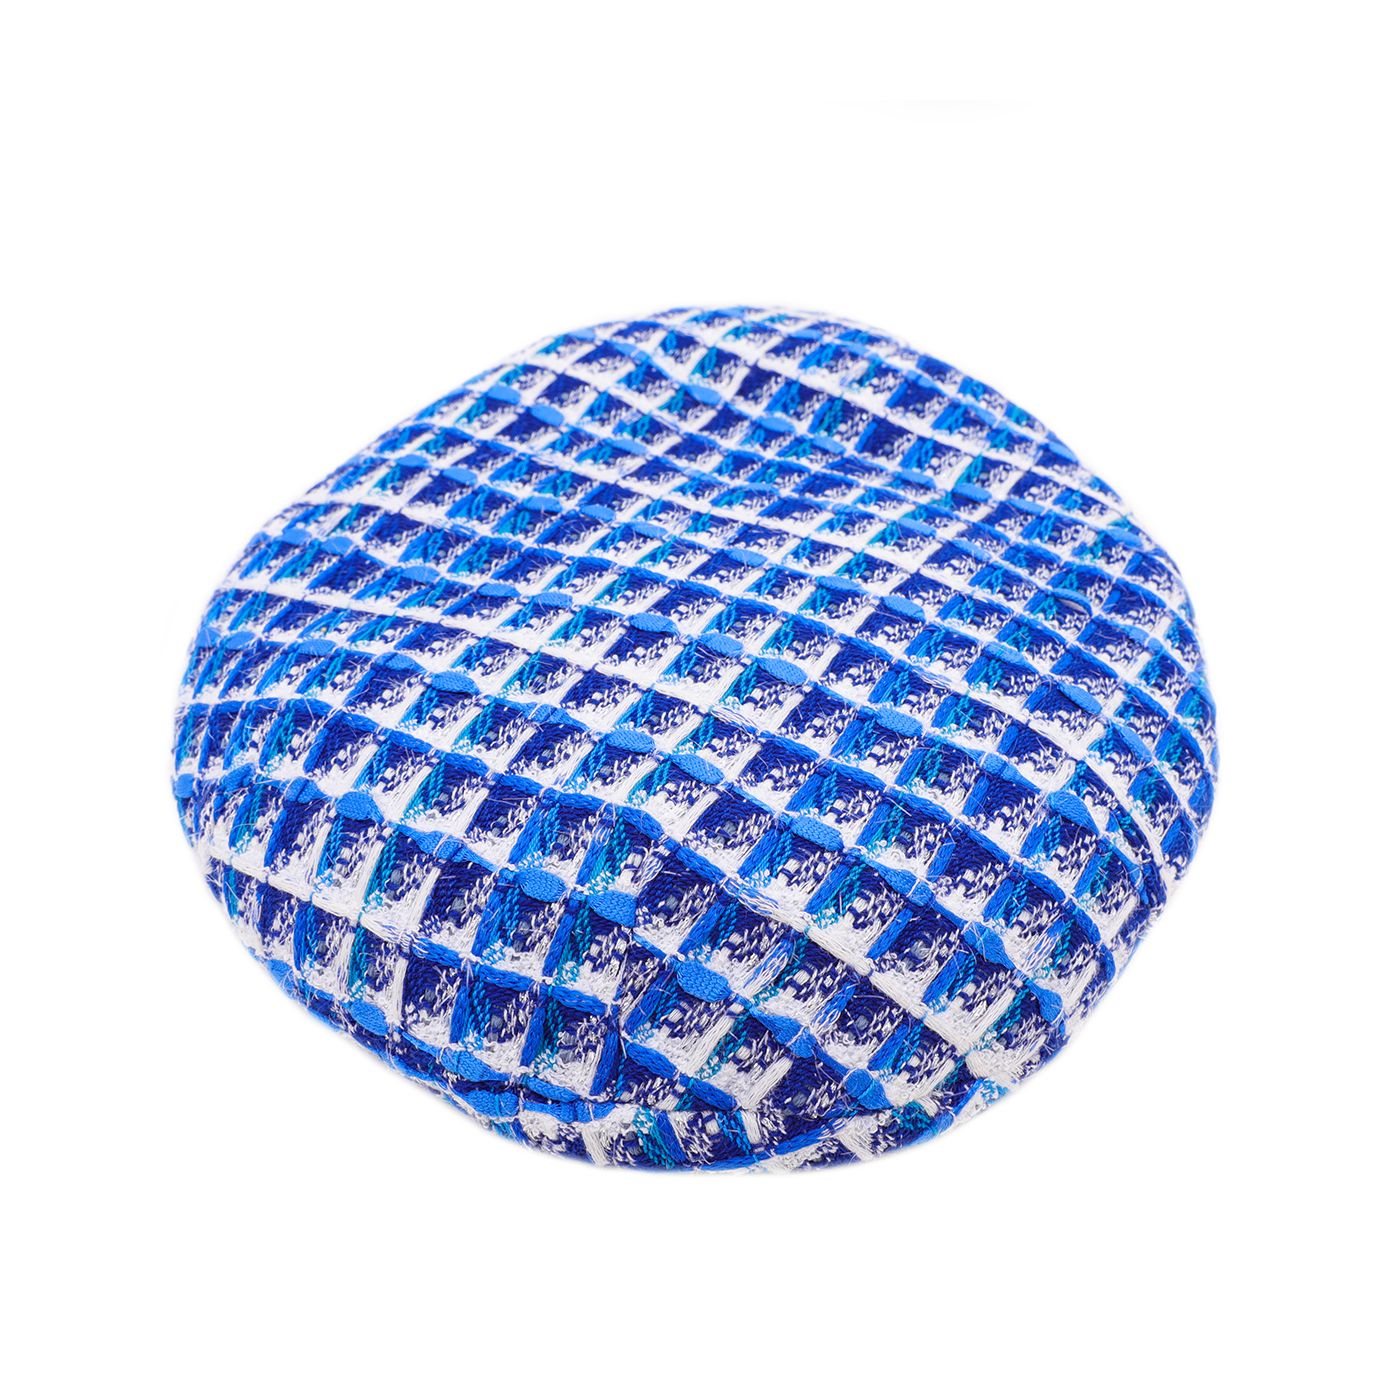 Chanel Blue White Fantasy Tweed Beret Hat Small